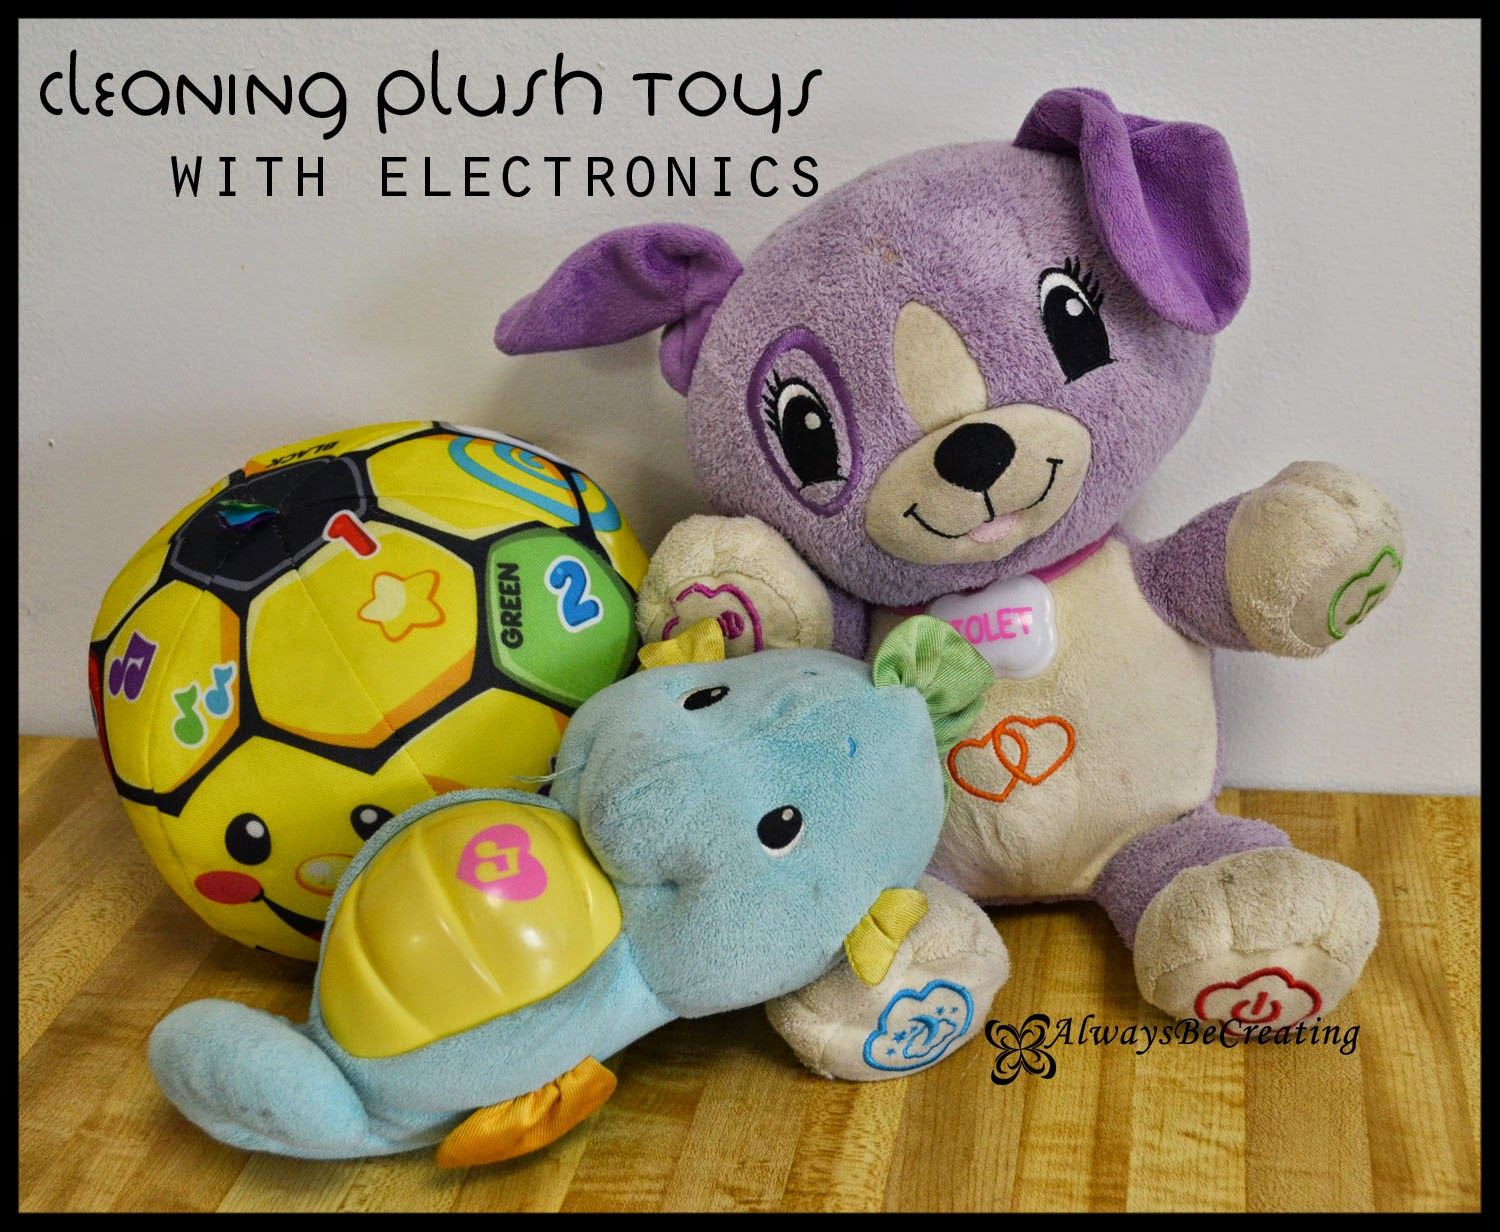 http://49fifty.weebly.com/1/post/2014/03/how-to-clean-stuffed-toys-with-electronics-inside.html